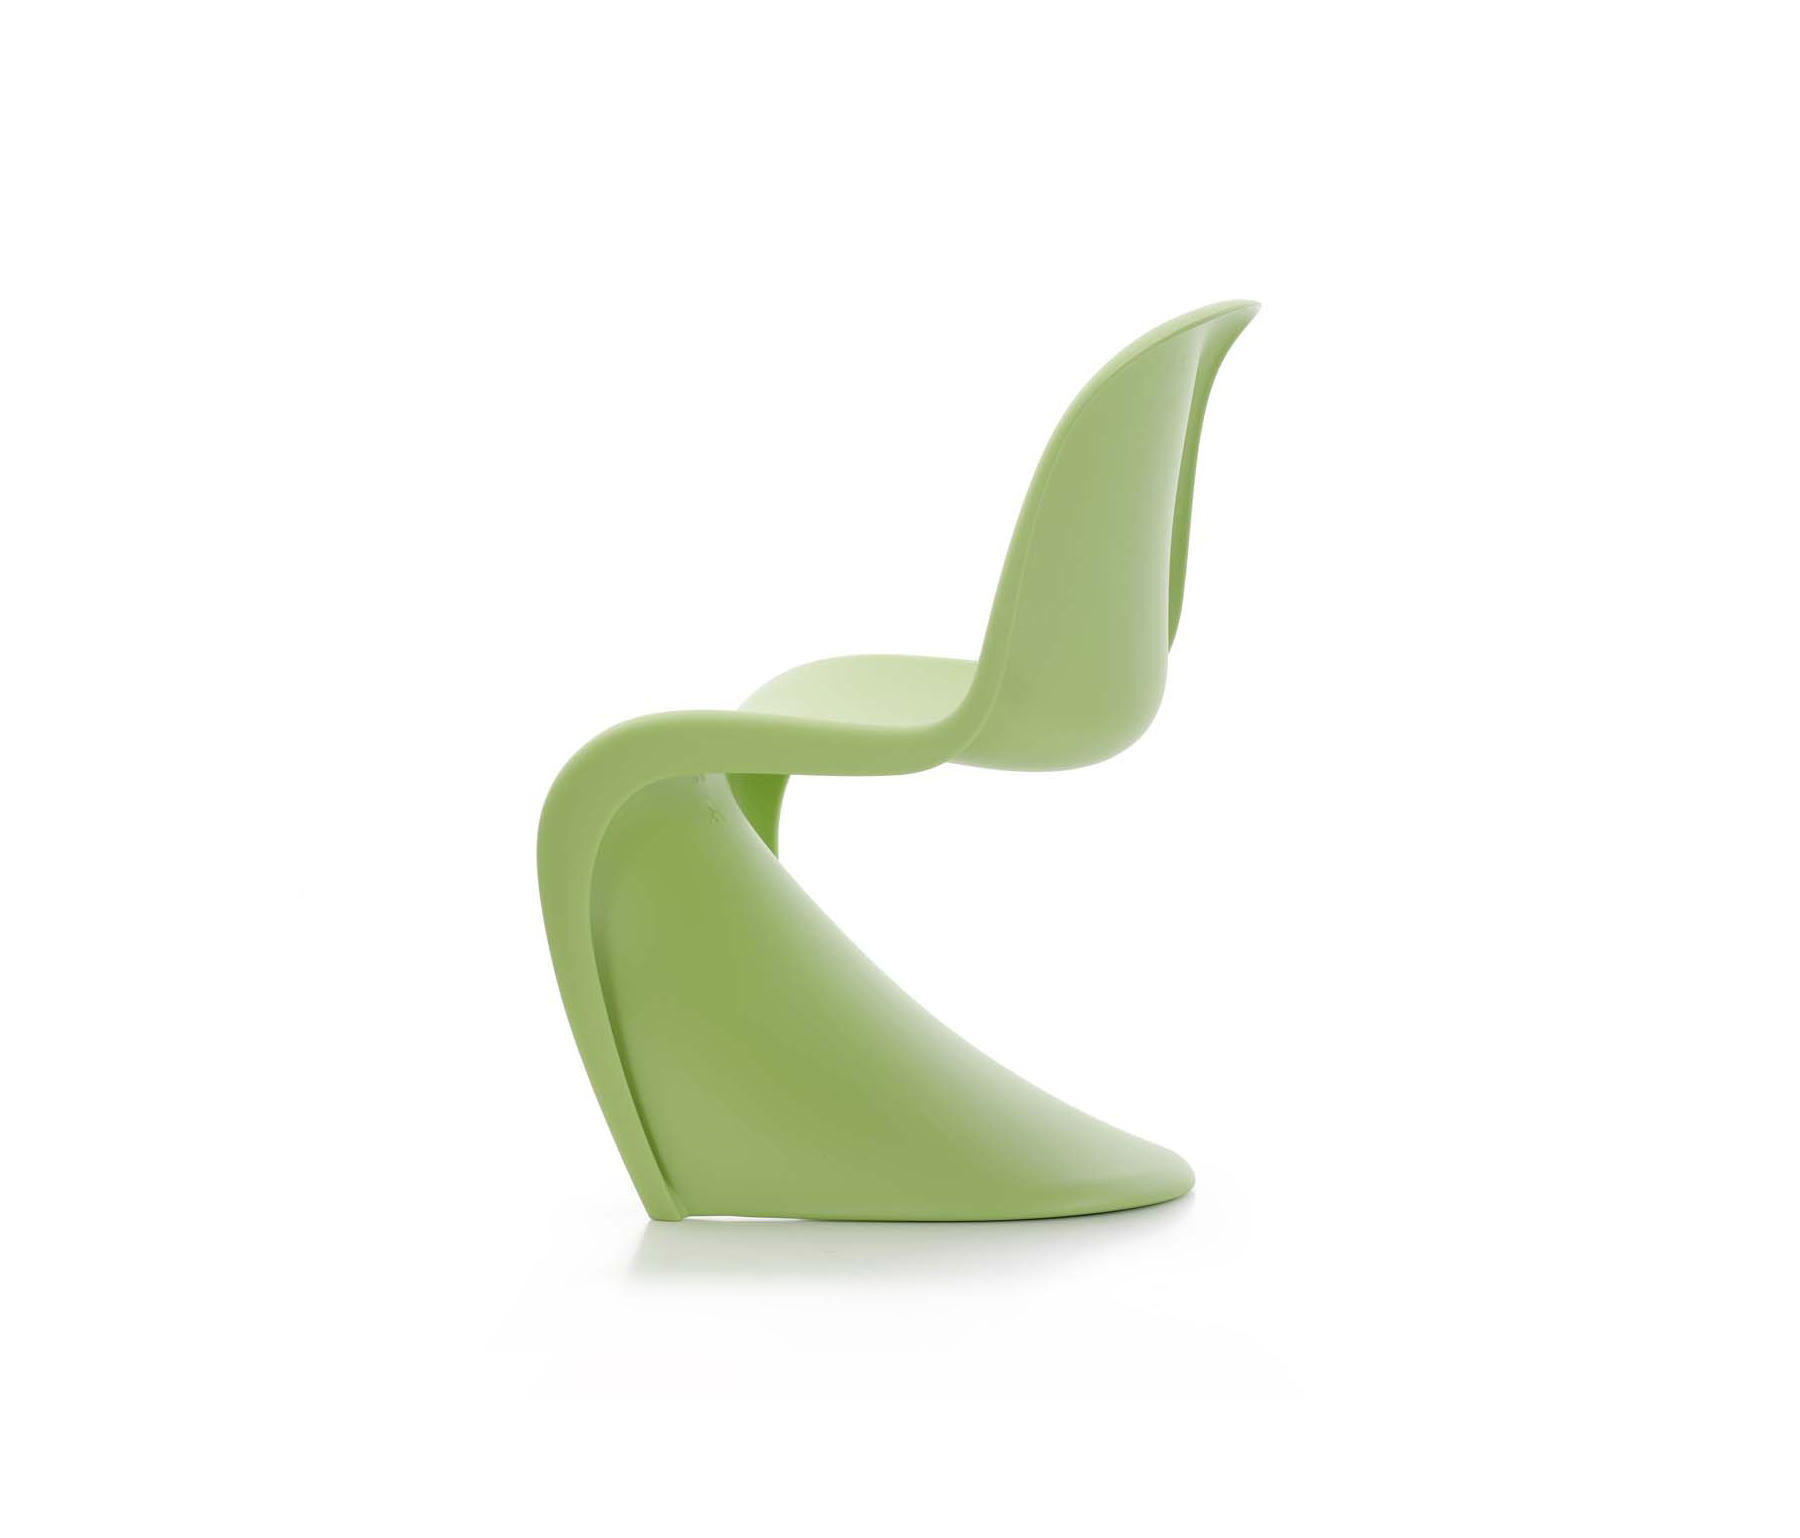 Chaise Panton Verner Panton panton junior - high quality designer products | architonic